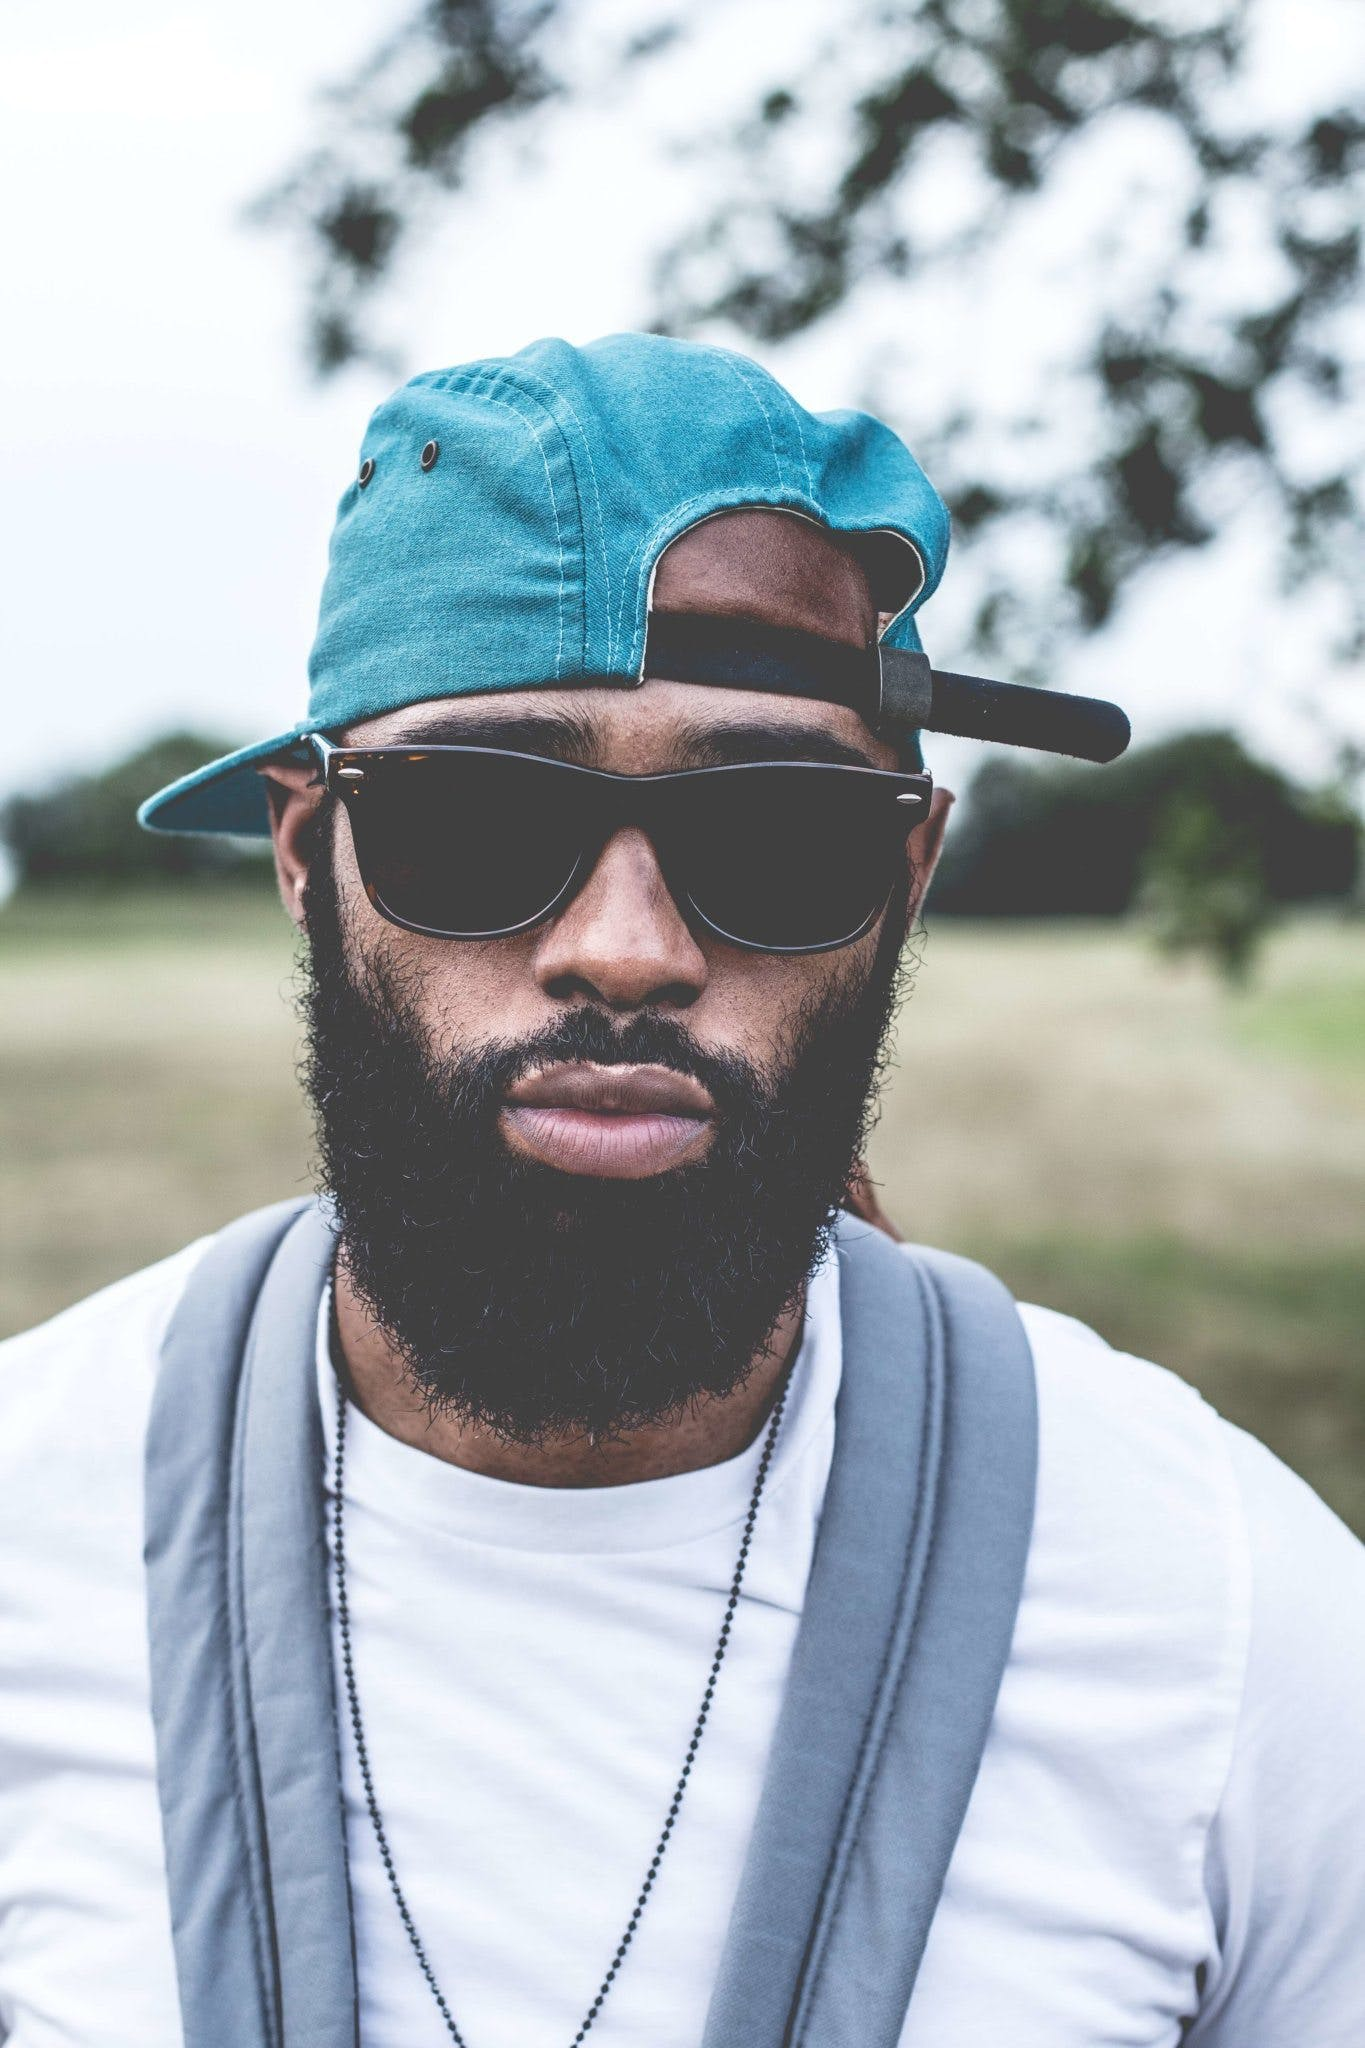 Man Wearing Sunglasses and Denim Strap Back Cap